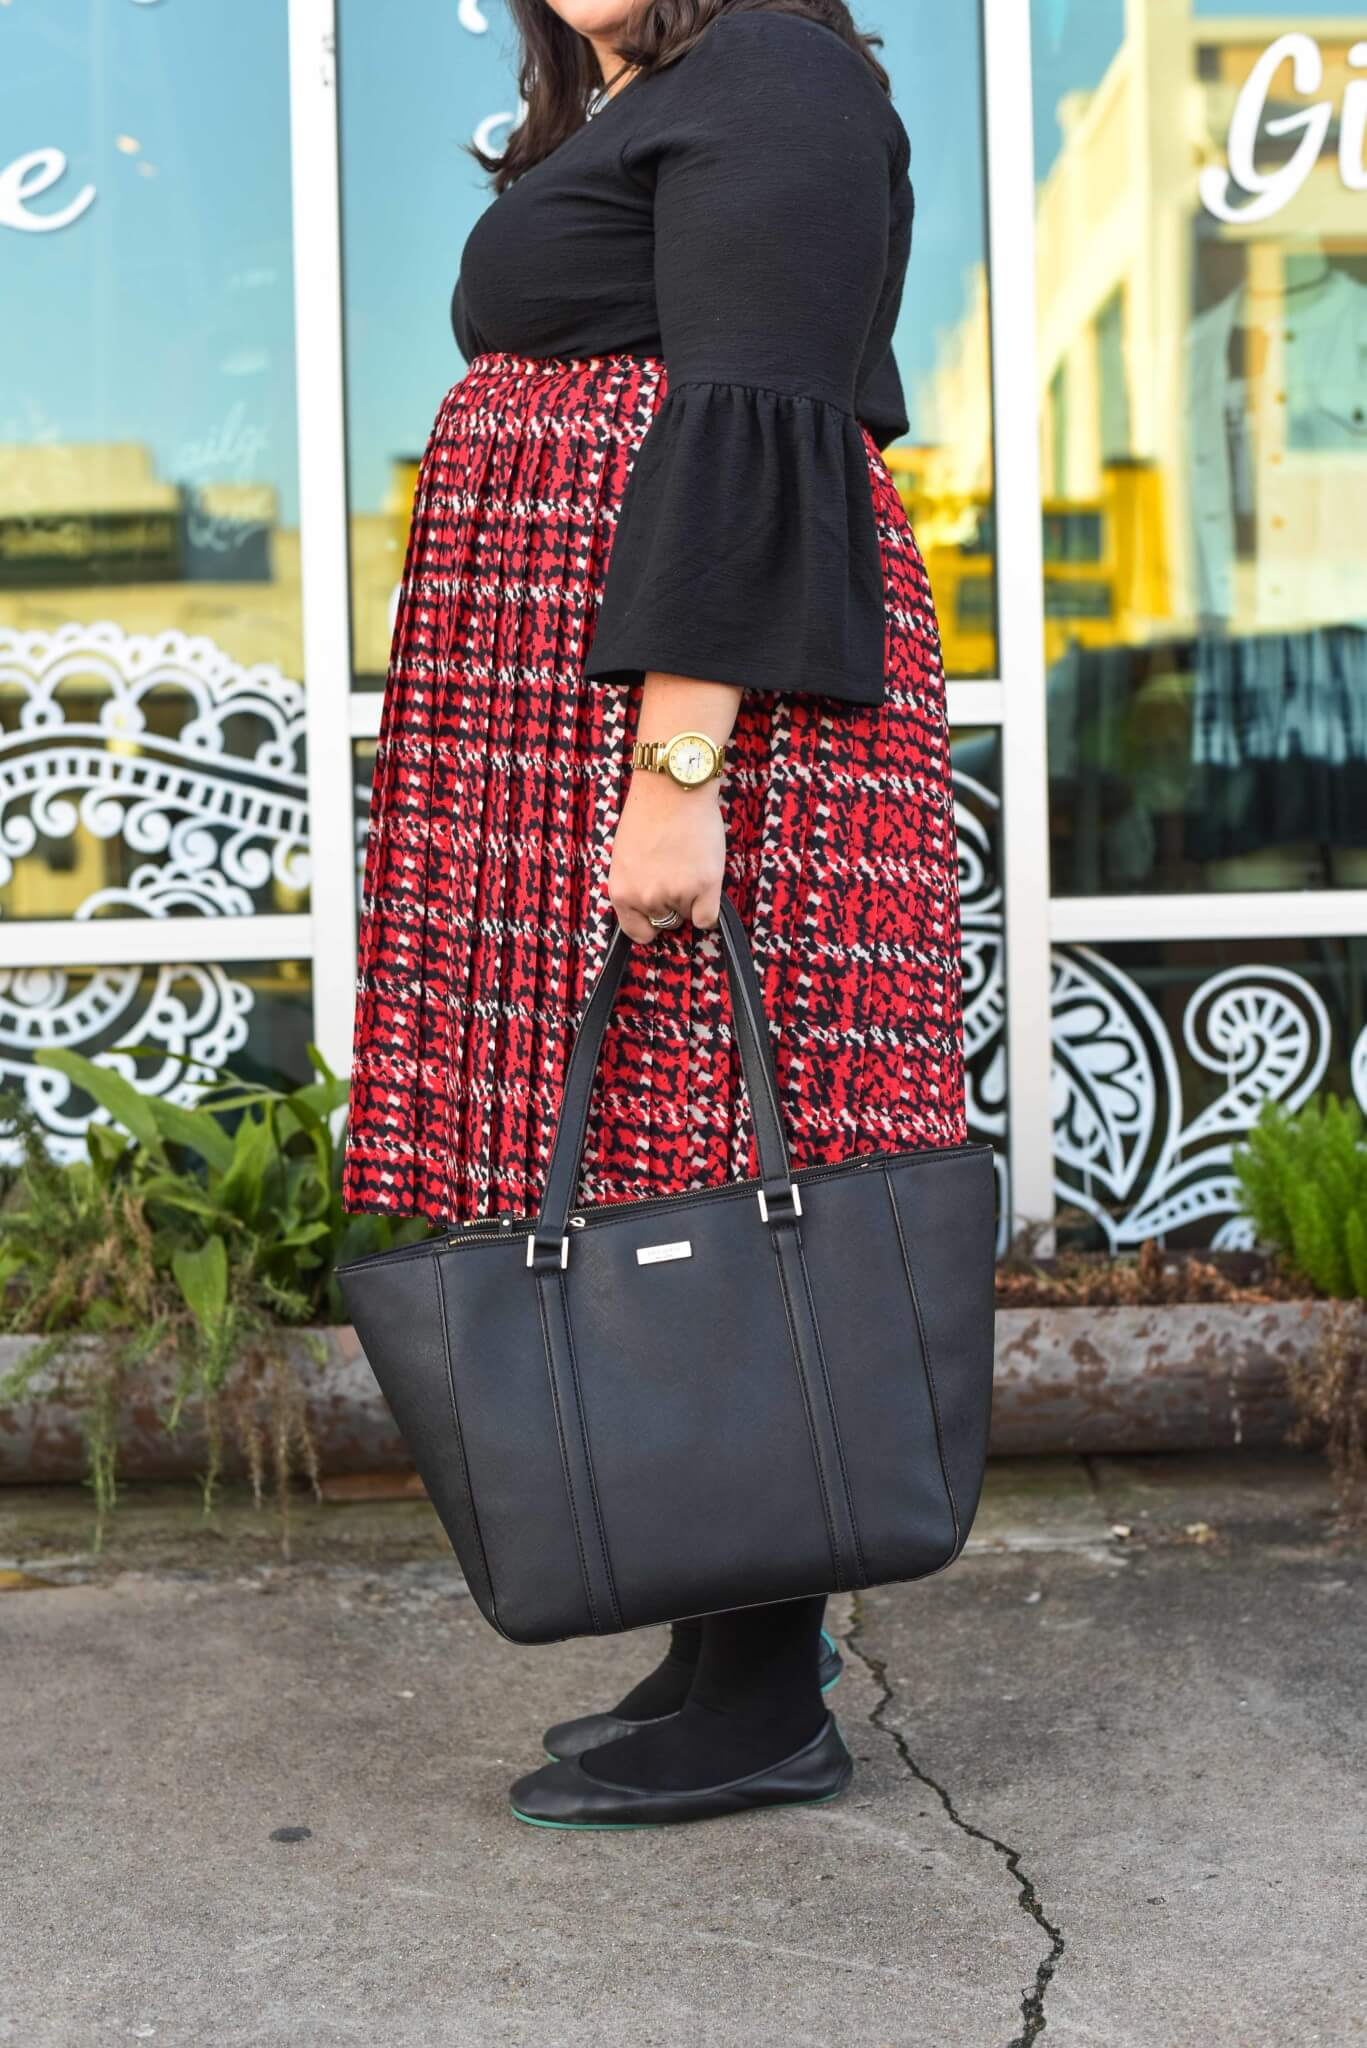 Dressing for all of the holiday season functions can be difficult epecially when you work long hours. Emily Bastedo from the curvy style blog Something Gold, Something Blue, is sharing her solution by styling a red plaid skirt and unique black sweater from Eloquii paired with gorgeous and comfortable Just My Size tights and Tieks.